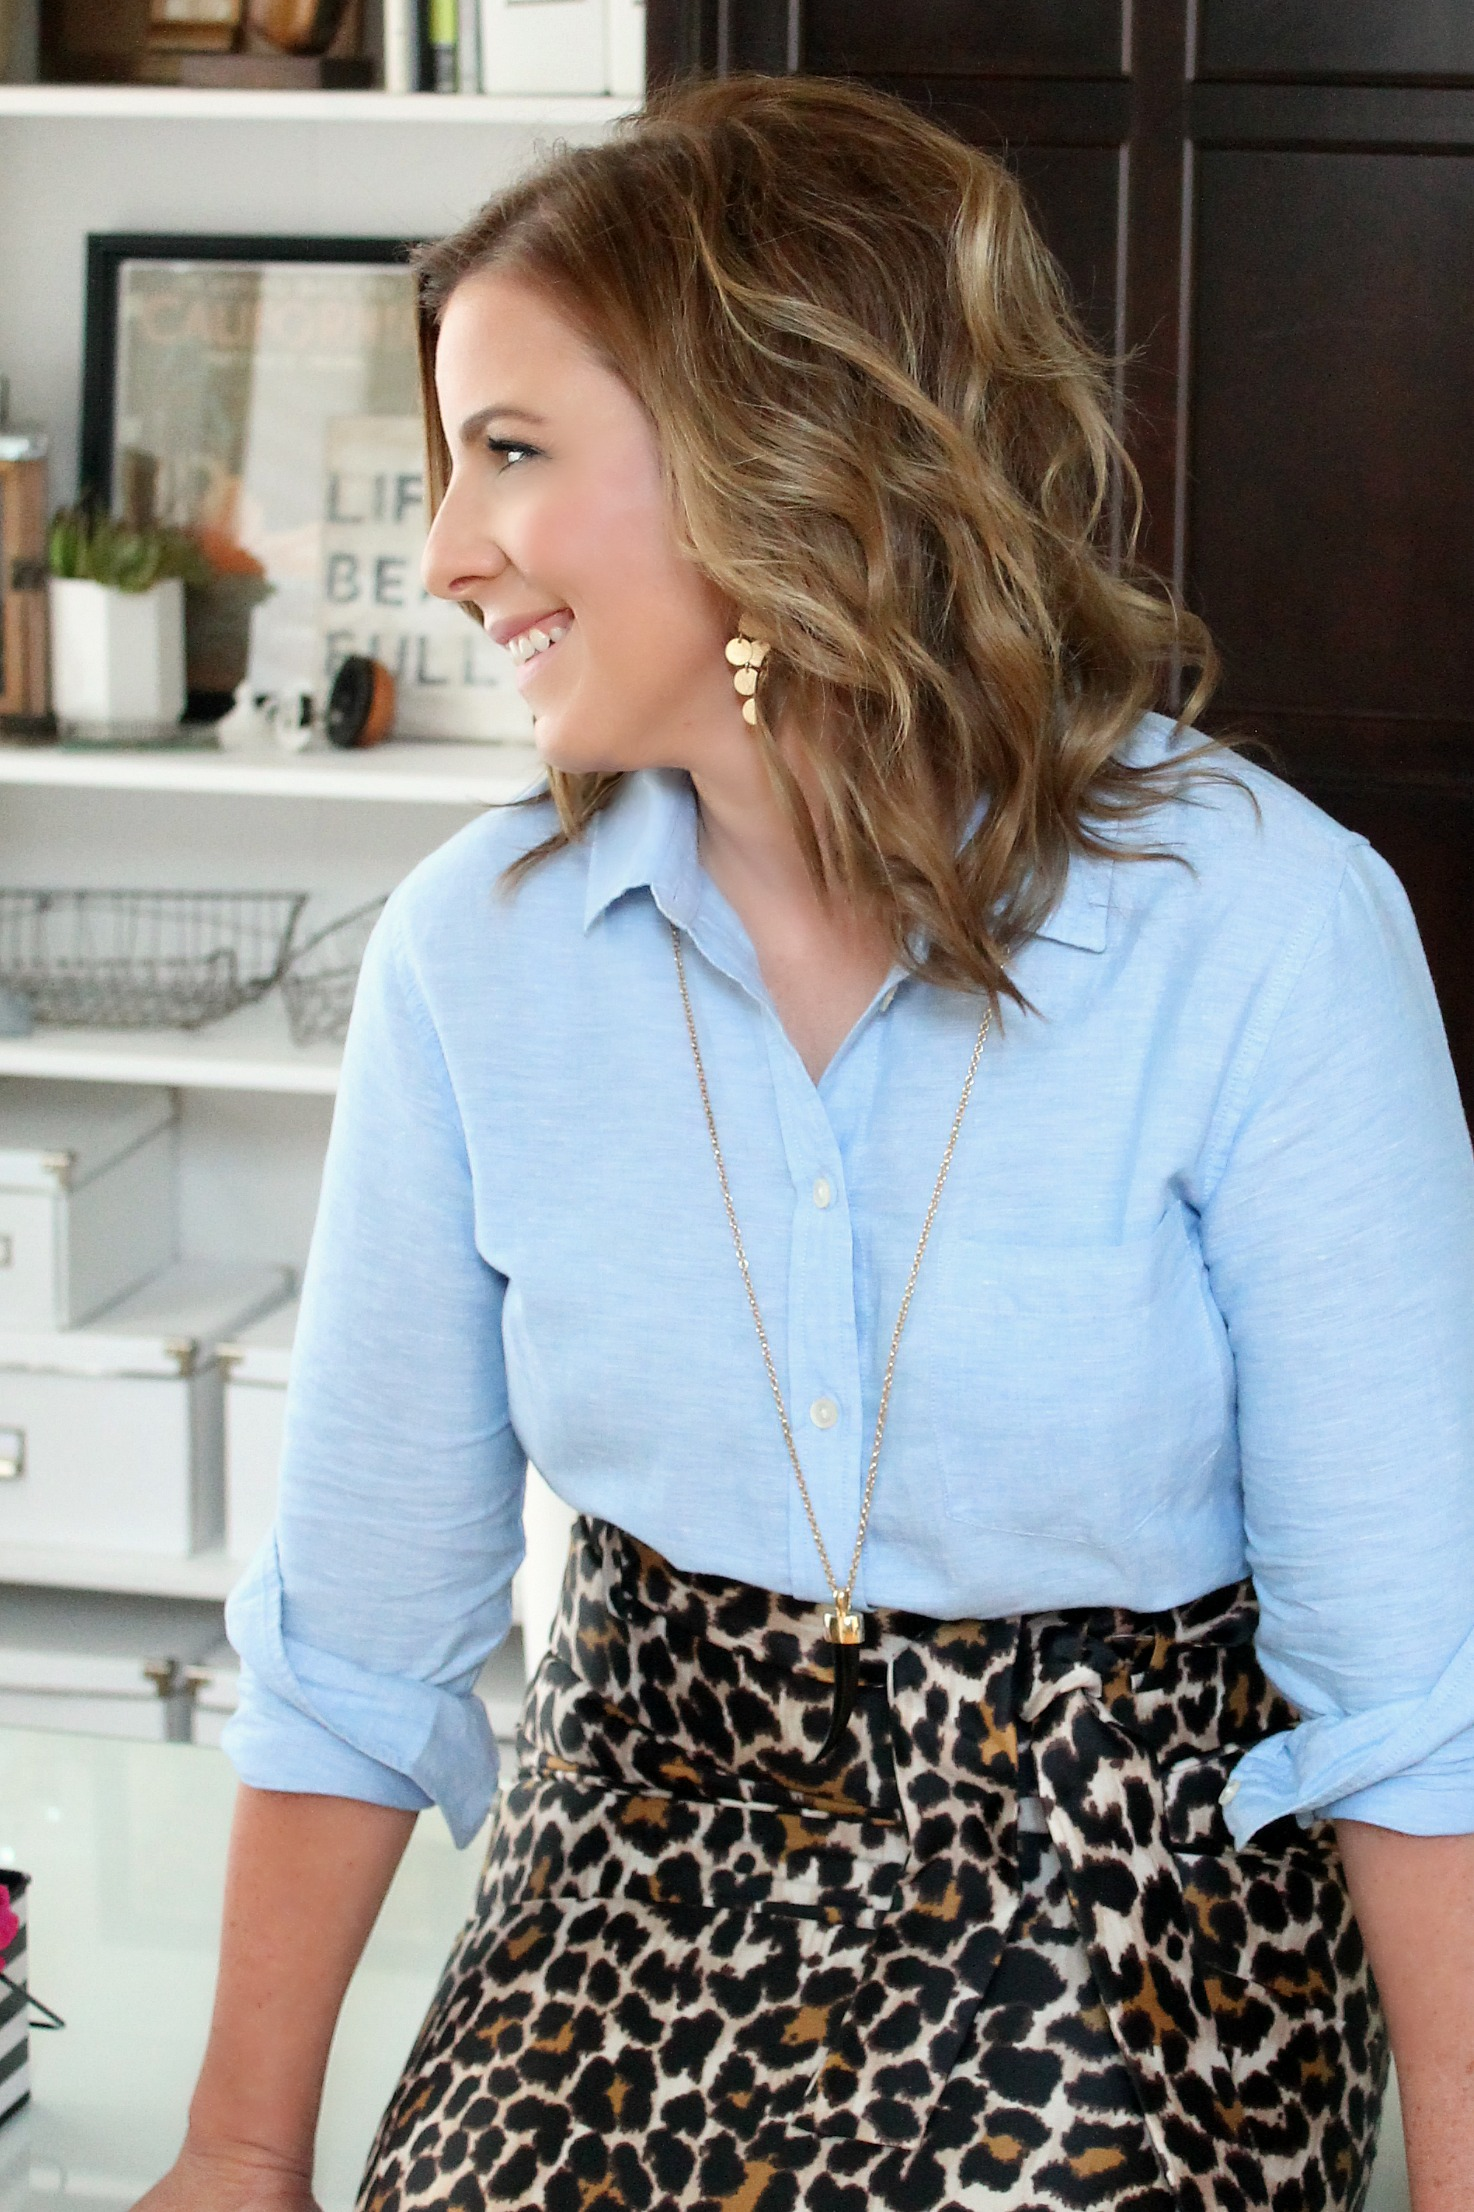 J. Crew Leopard Print Skirt and Banana Republic Shirt